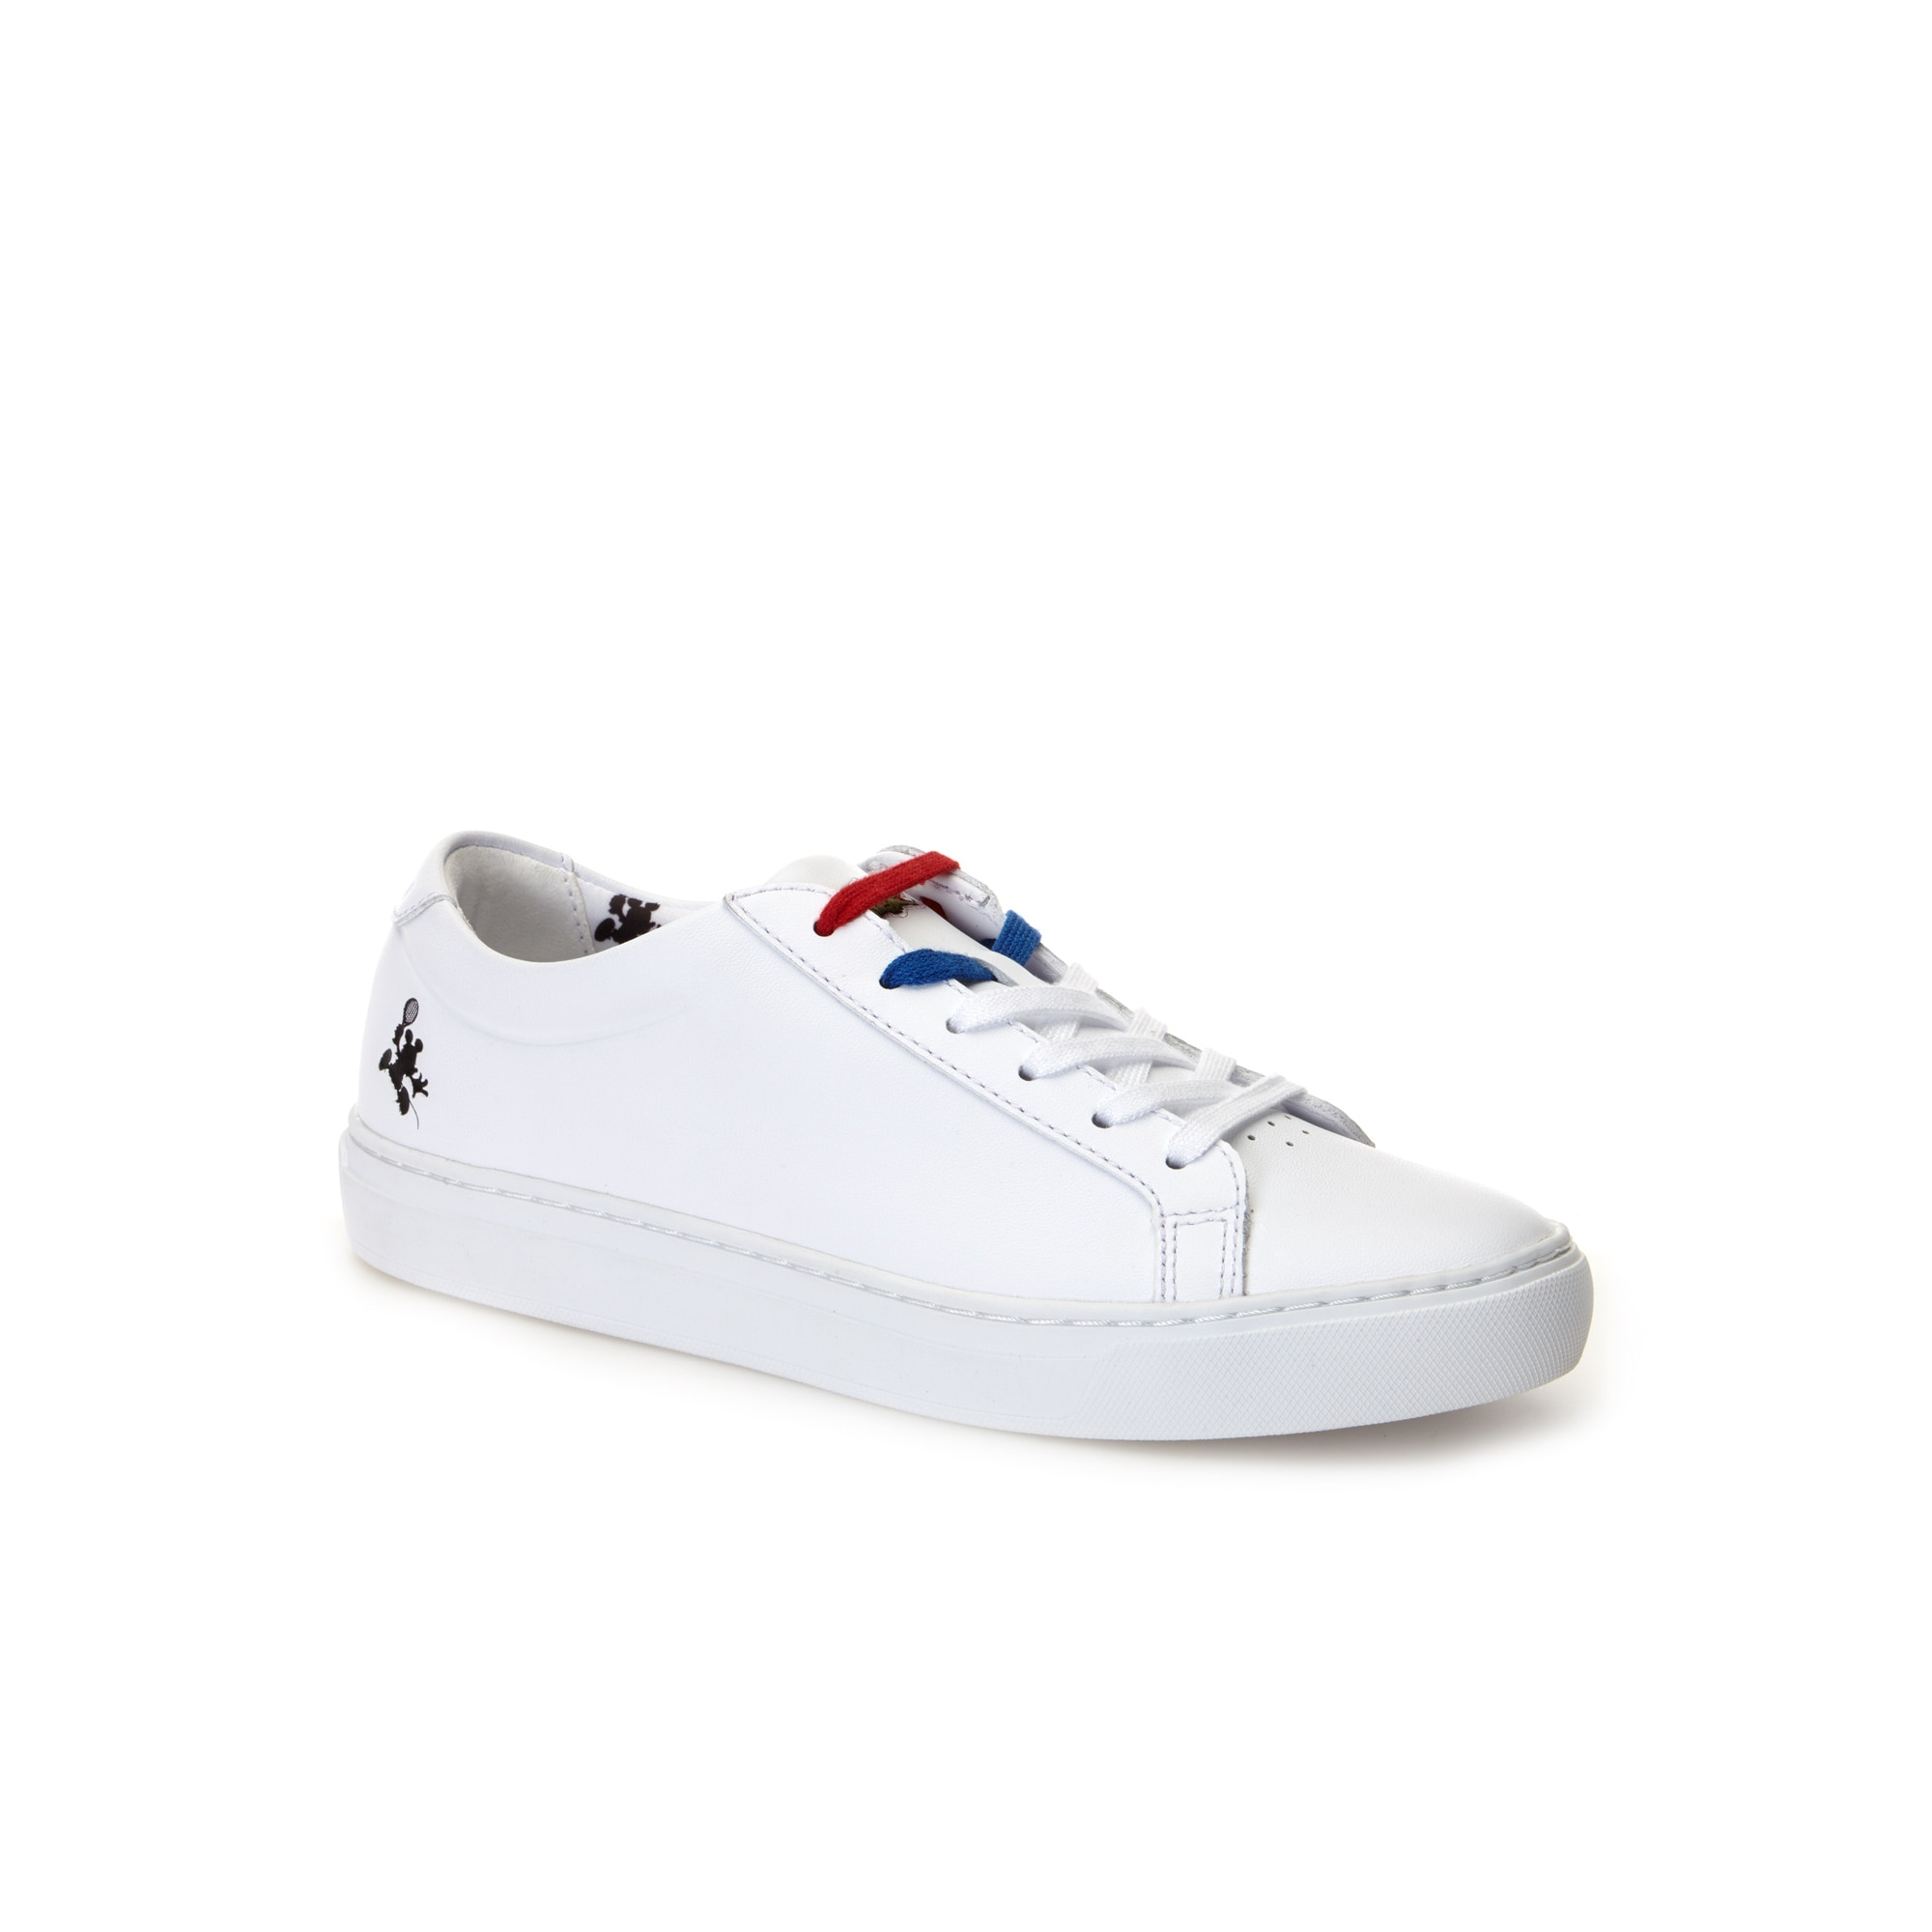 9069a3cf4fb3 Women s L.12.12 Lacoste Disney Sneakers